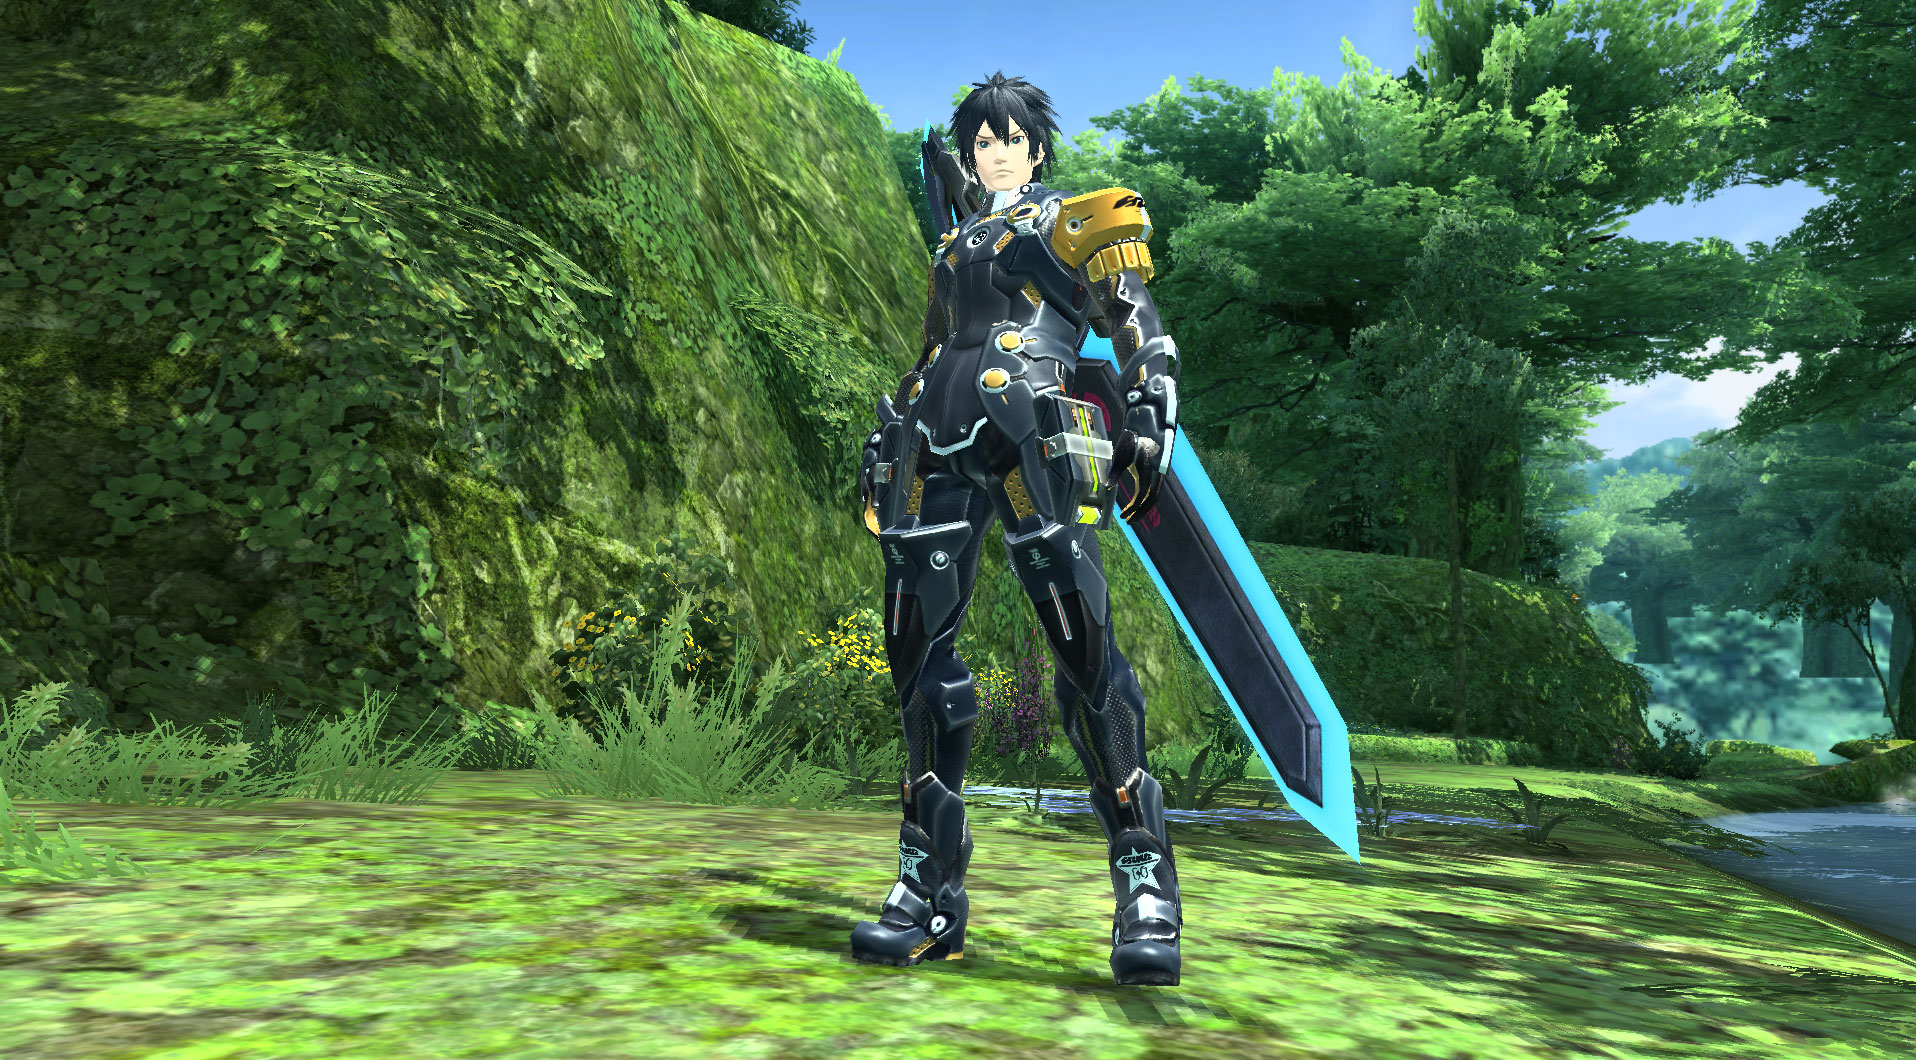 Phantasy Star Online Backgrounds, Compatible - PC, Mobile, Gadgets| 1916x1060 px